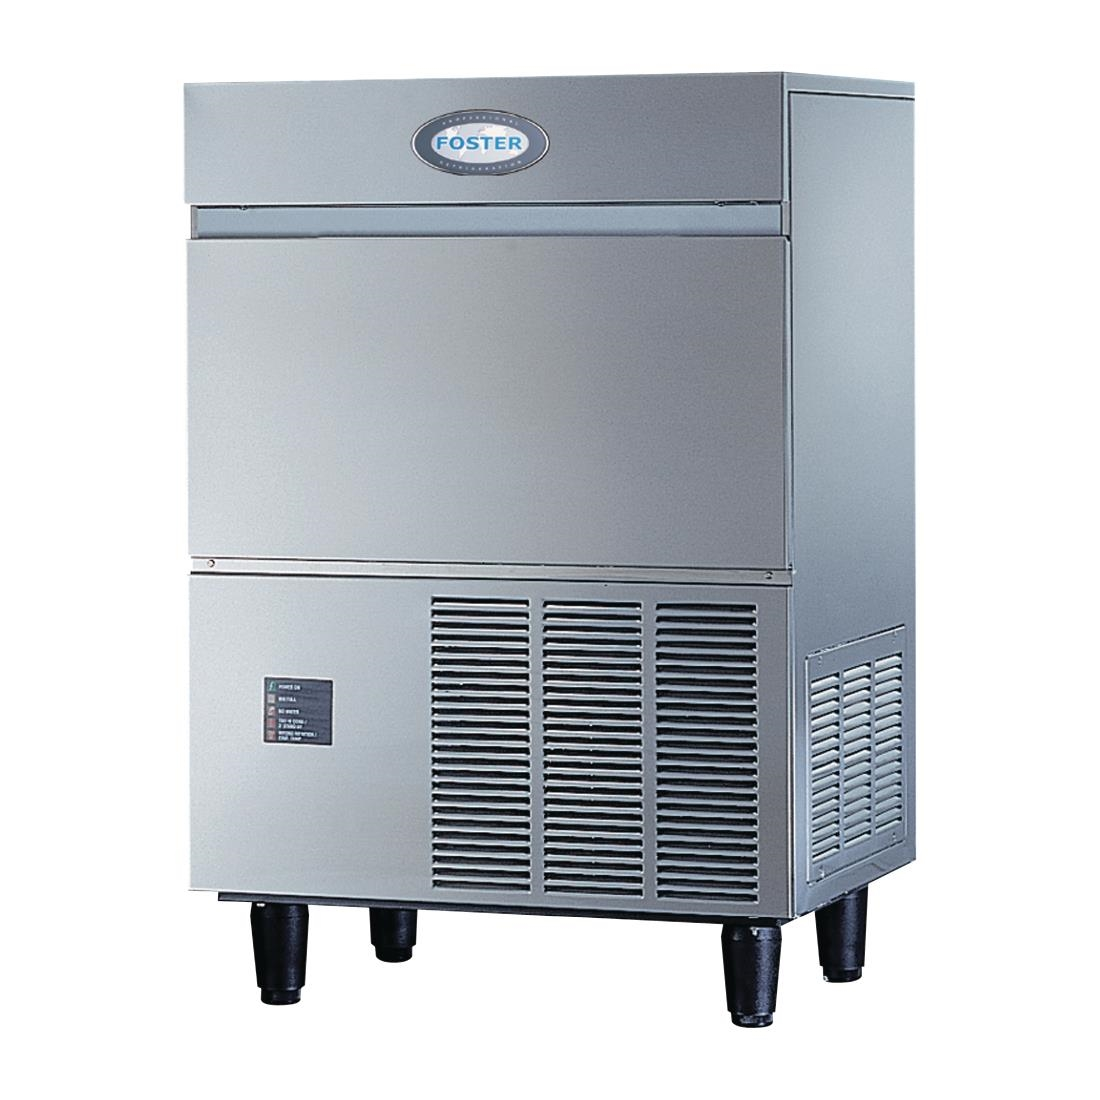 Image of Foster Ice Flaker 130kg Output FMIF120